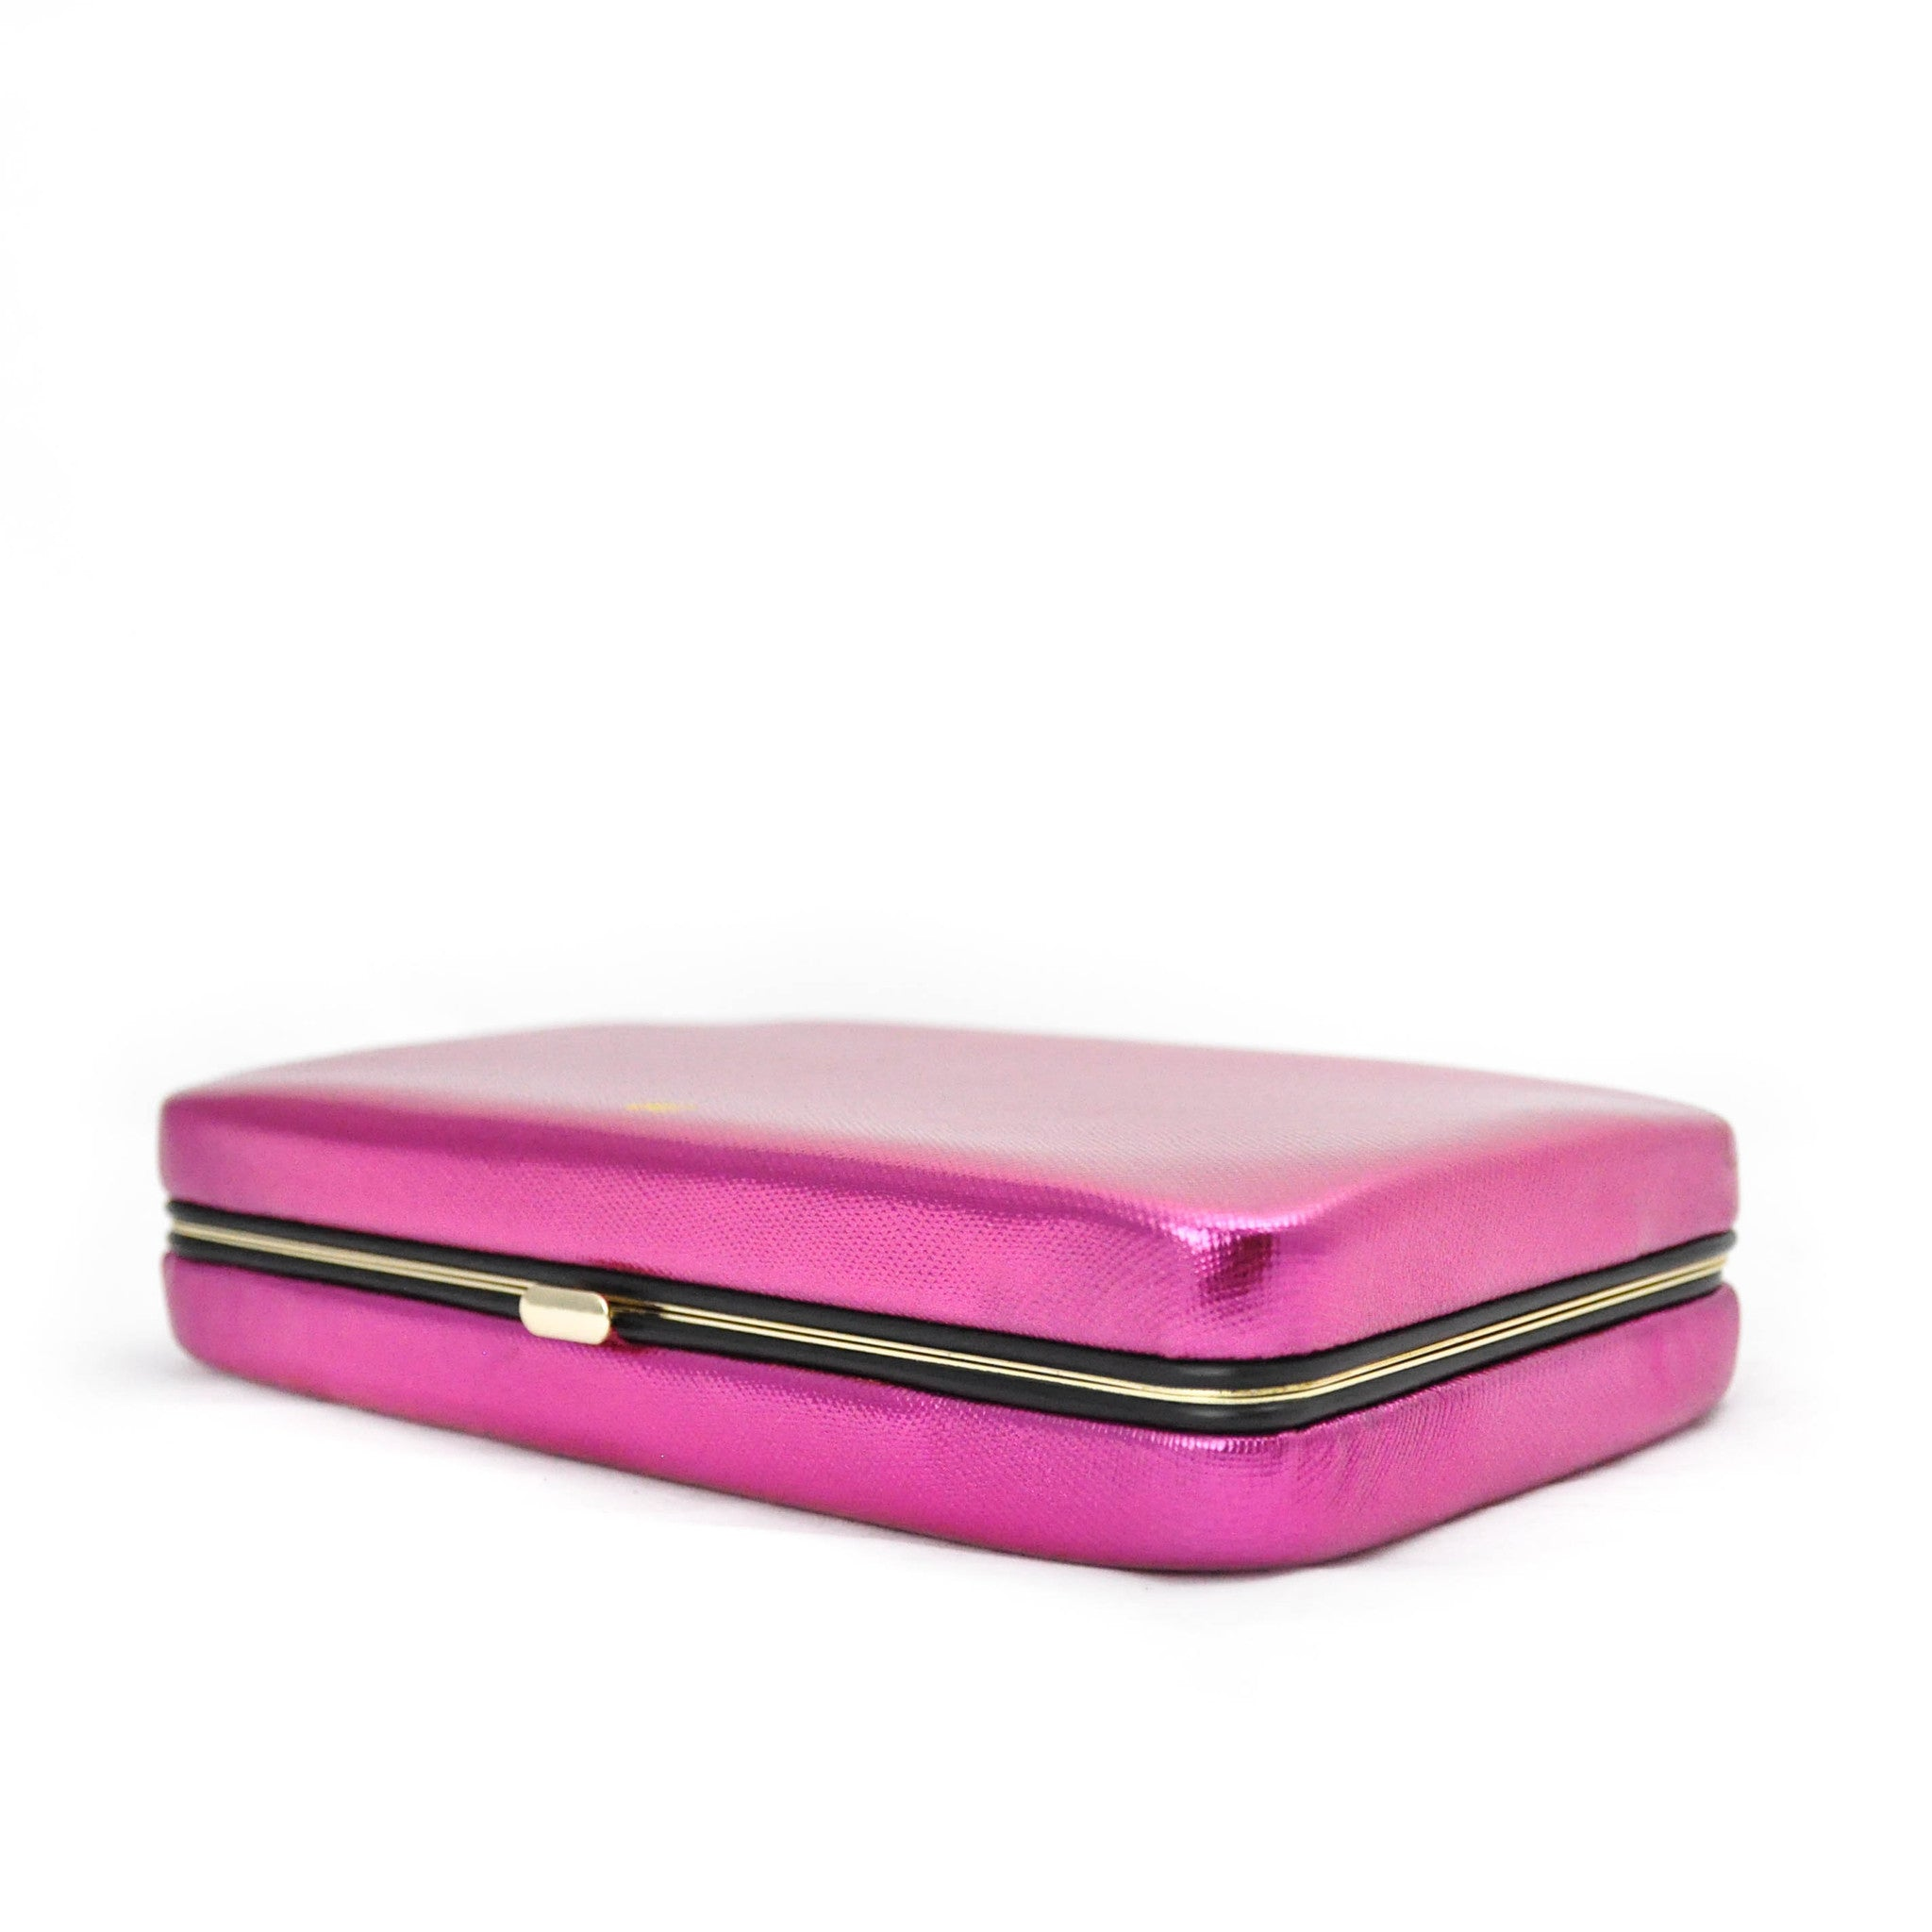 Dollup Makeup Case Organizer - LoveEmme, Product_Type, Product_Vendor